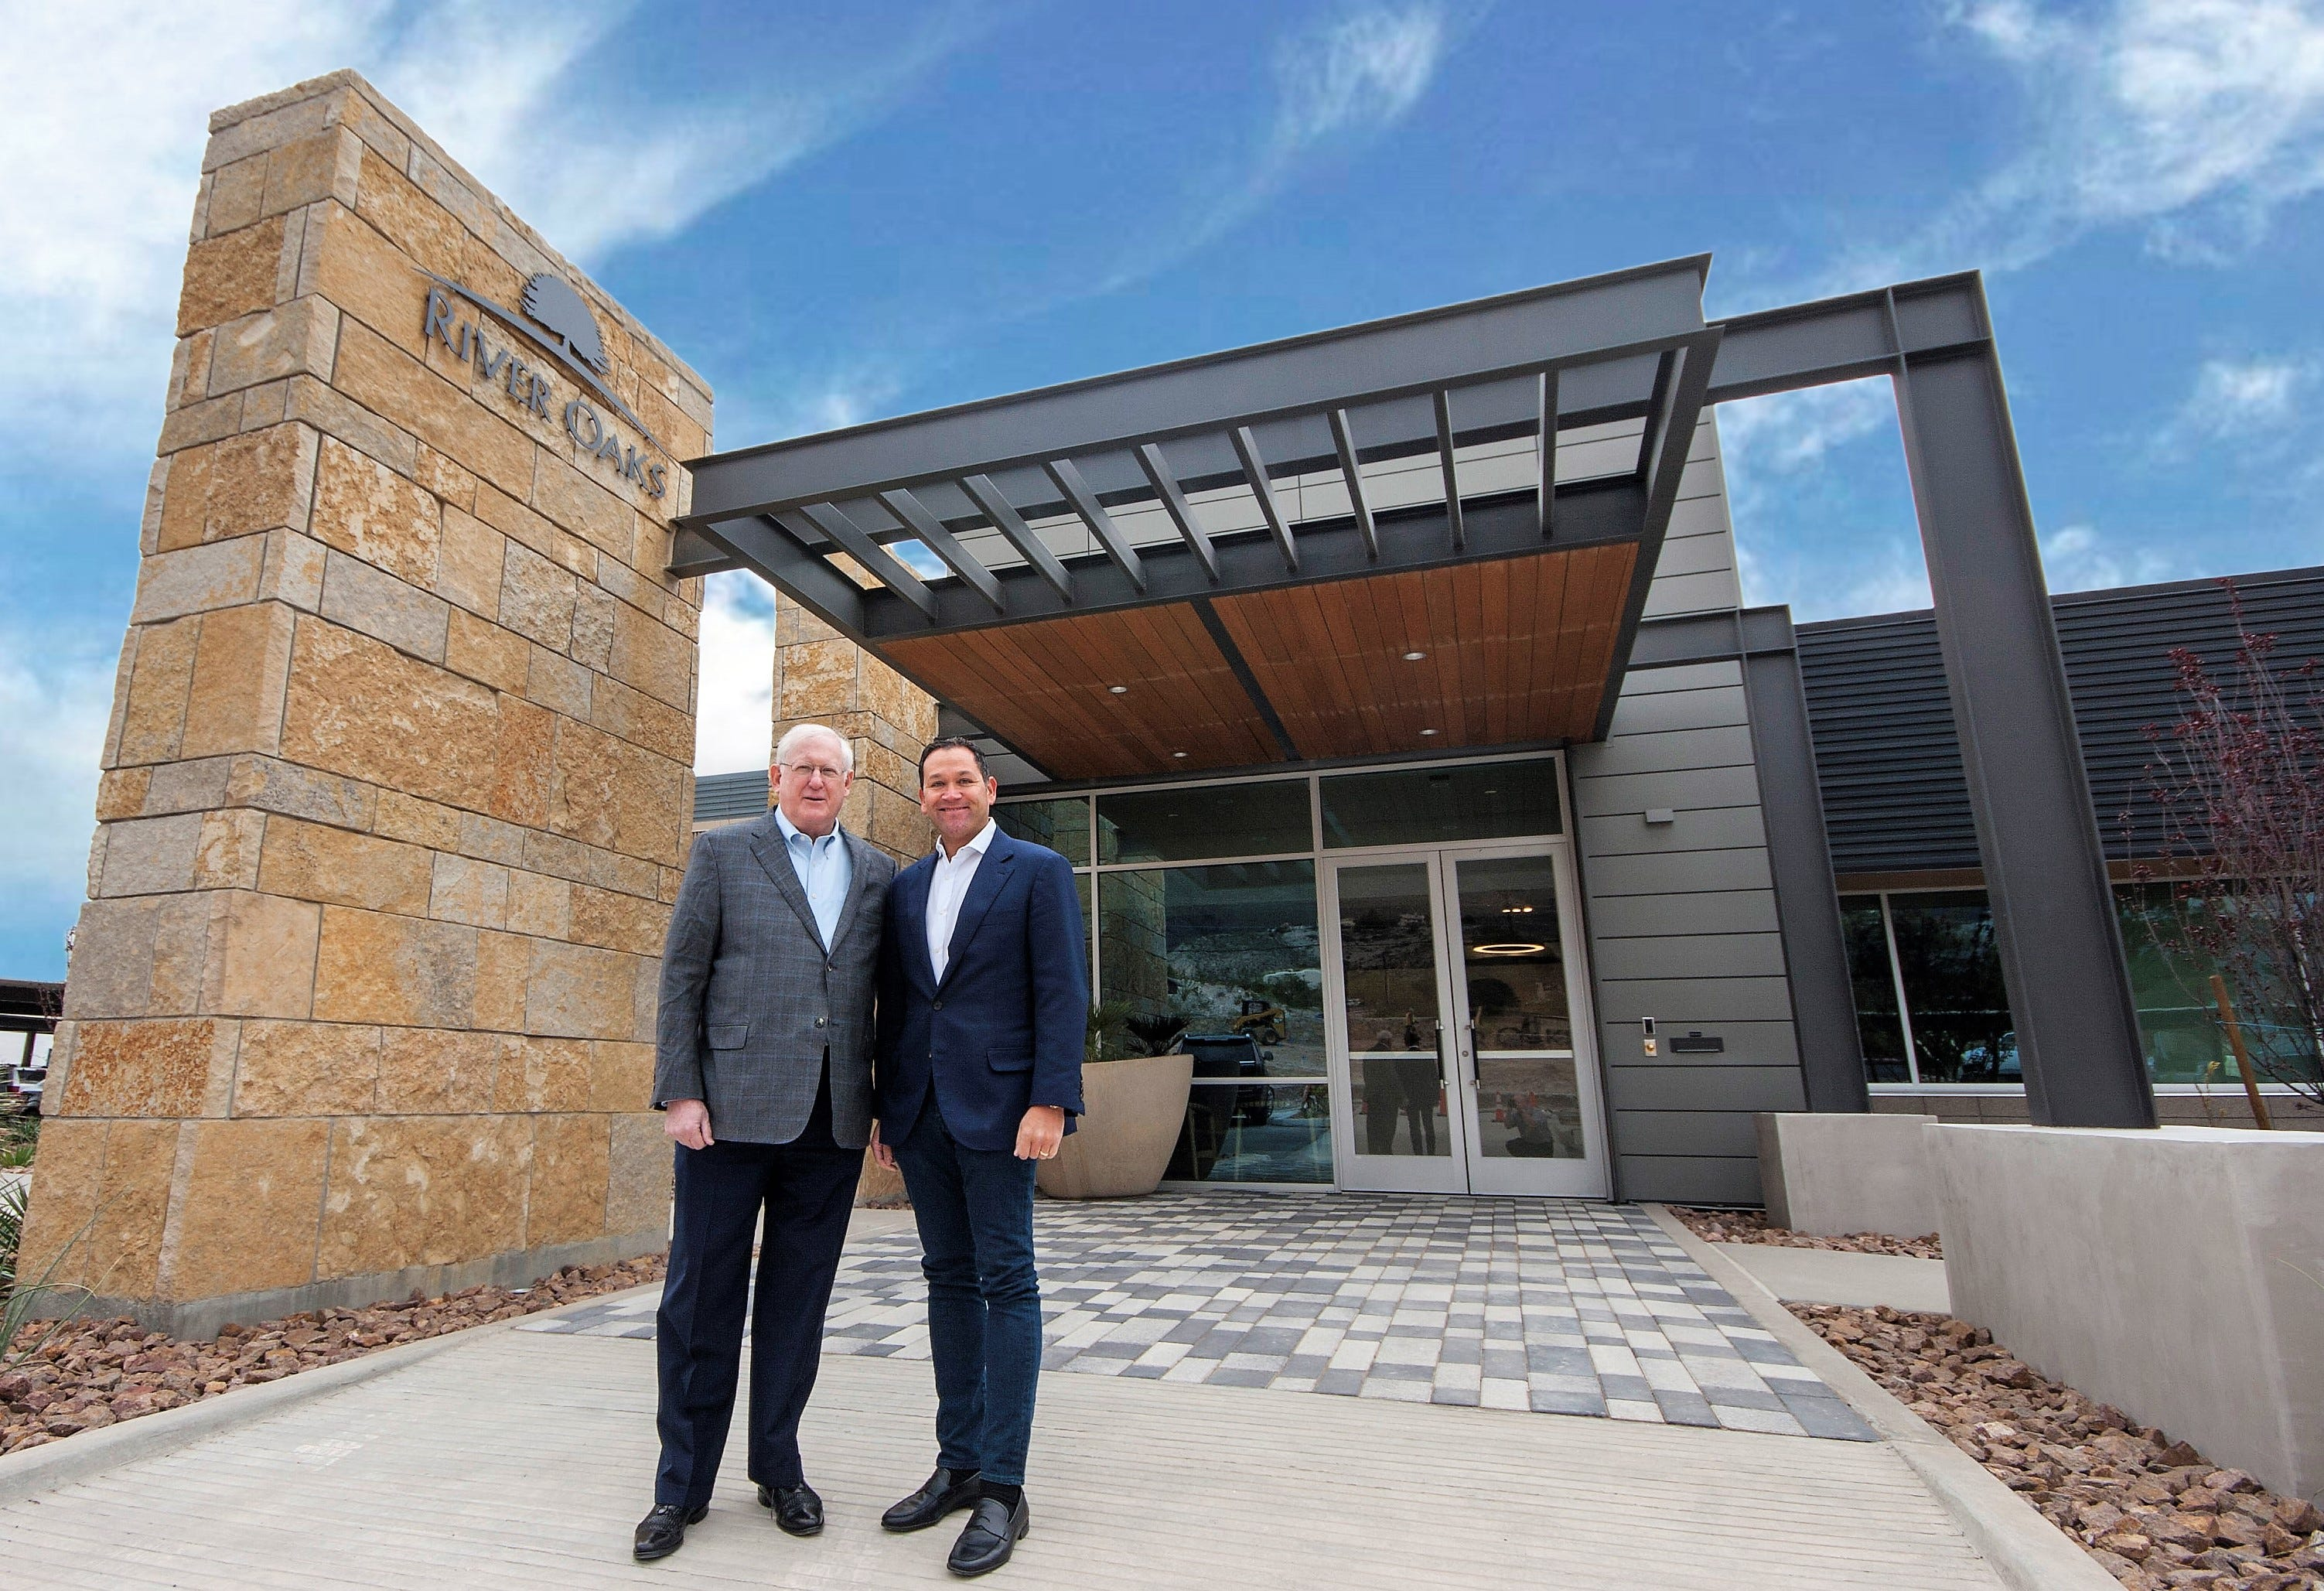 Shopping center developer River Oaks has new headquarters; Olive Garden GM a top manager | El Paso Times